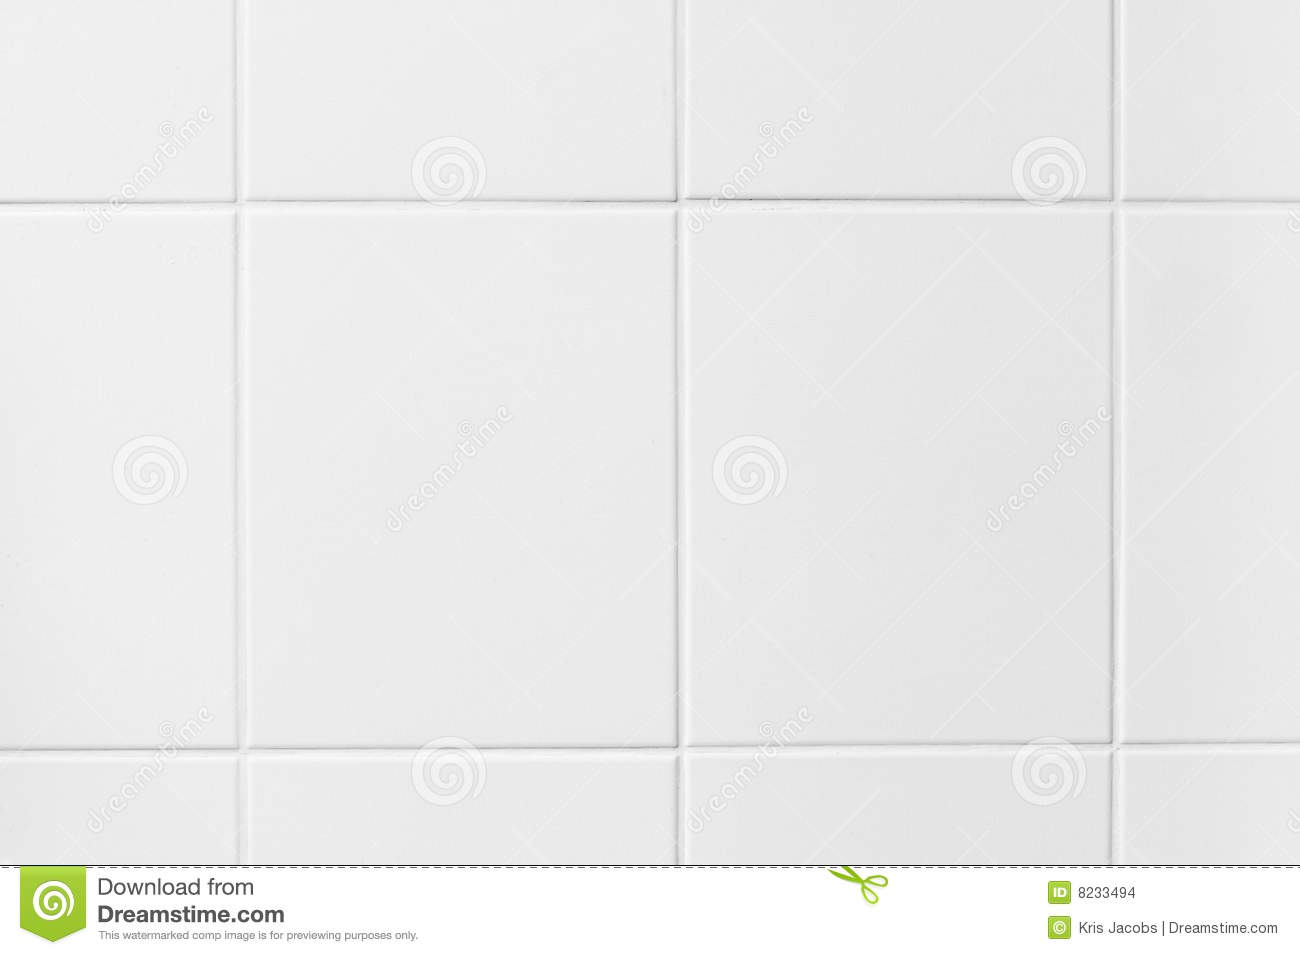 High Resolution Background Of White Tiles Stock Images  : high resolution background white tiles 8233494 <strong>Printer  Clip Art</strong> from www.dreamstime.com size 1300 x 955 jpeg 45kB